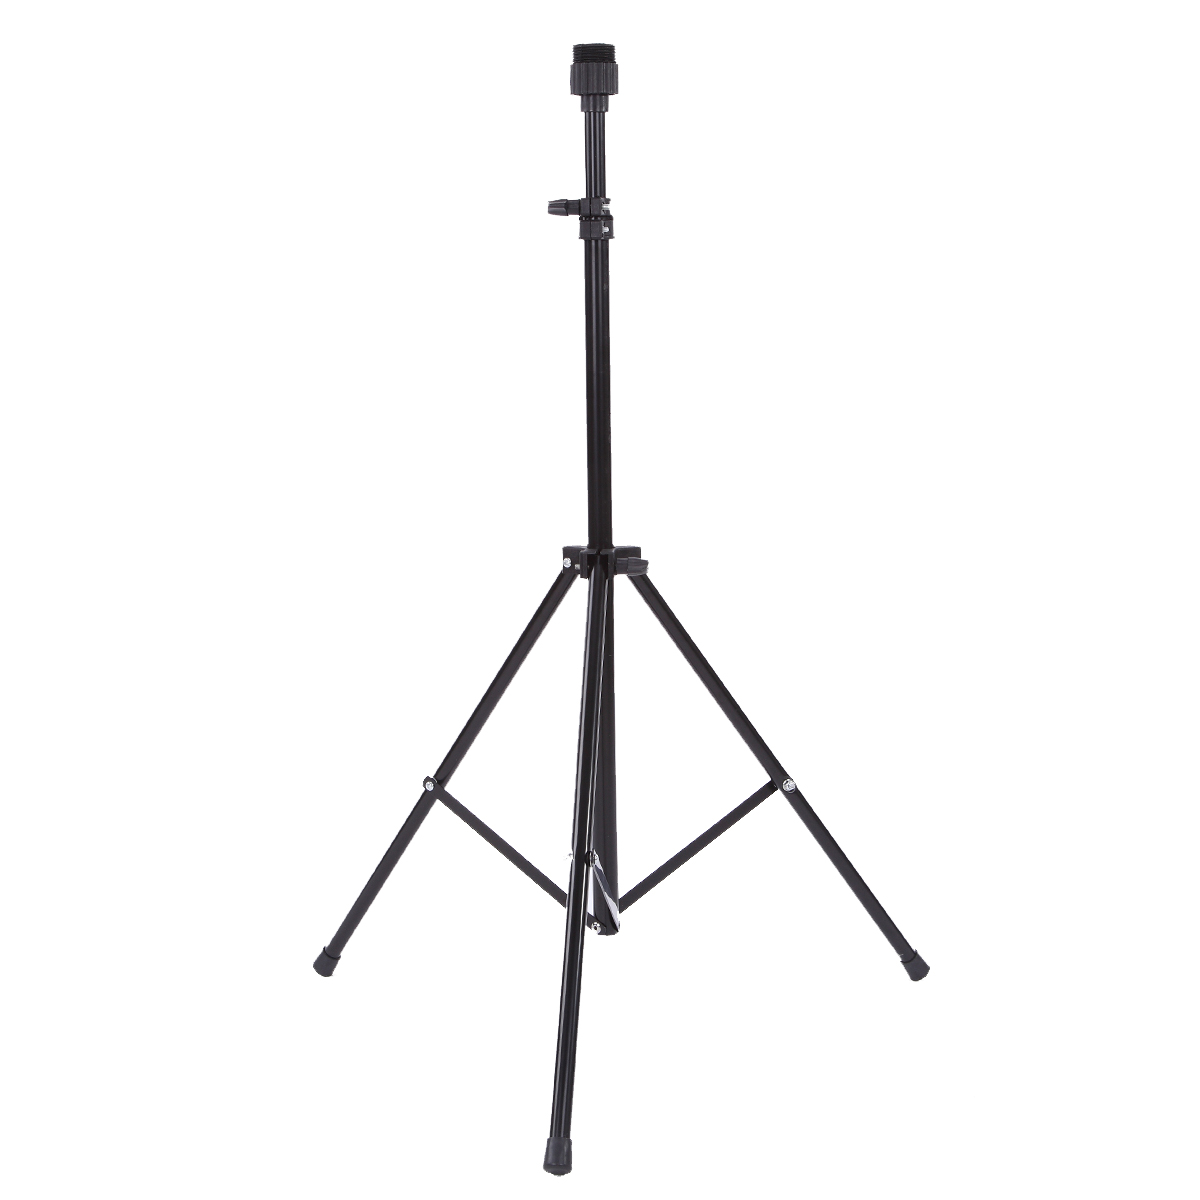 Salon Adjustable Wig Tripod Stand Hair Practice Training Mannequin Head Holder Clamp Showed Prop Wig Hairstyling Tool